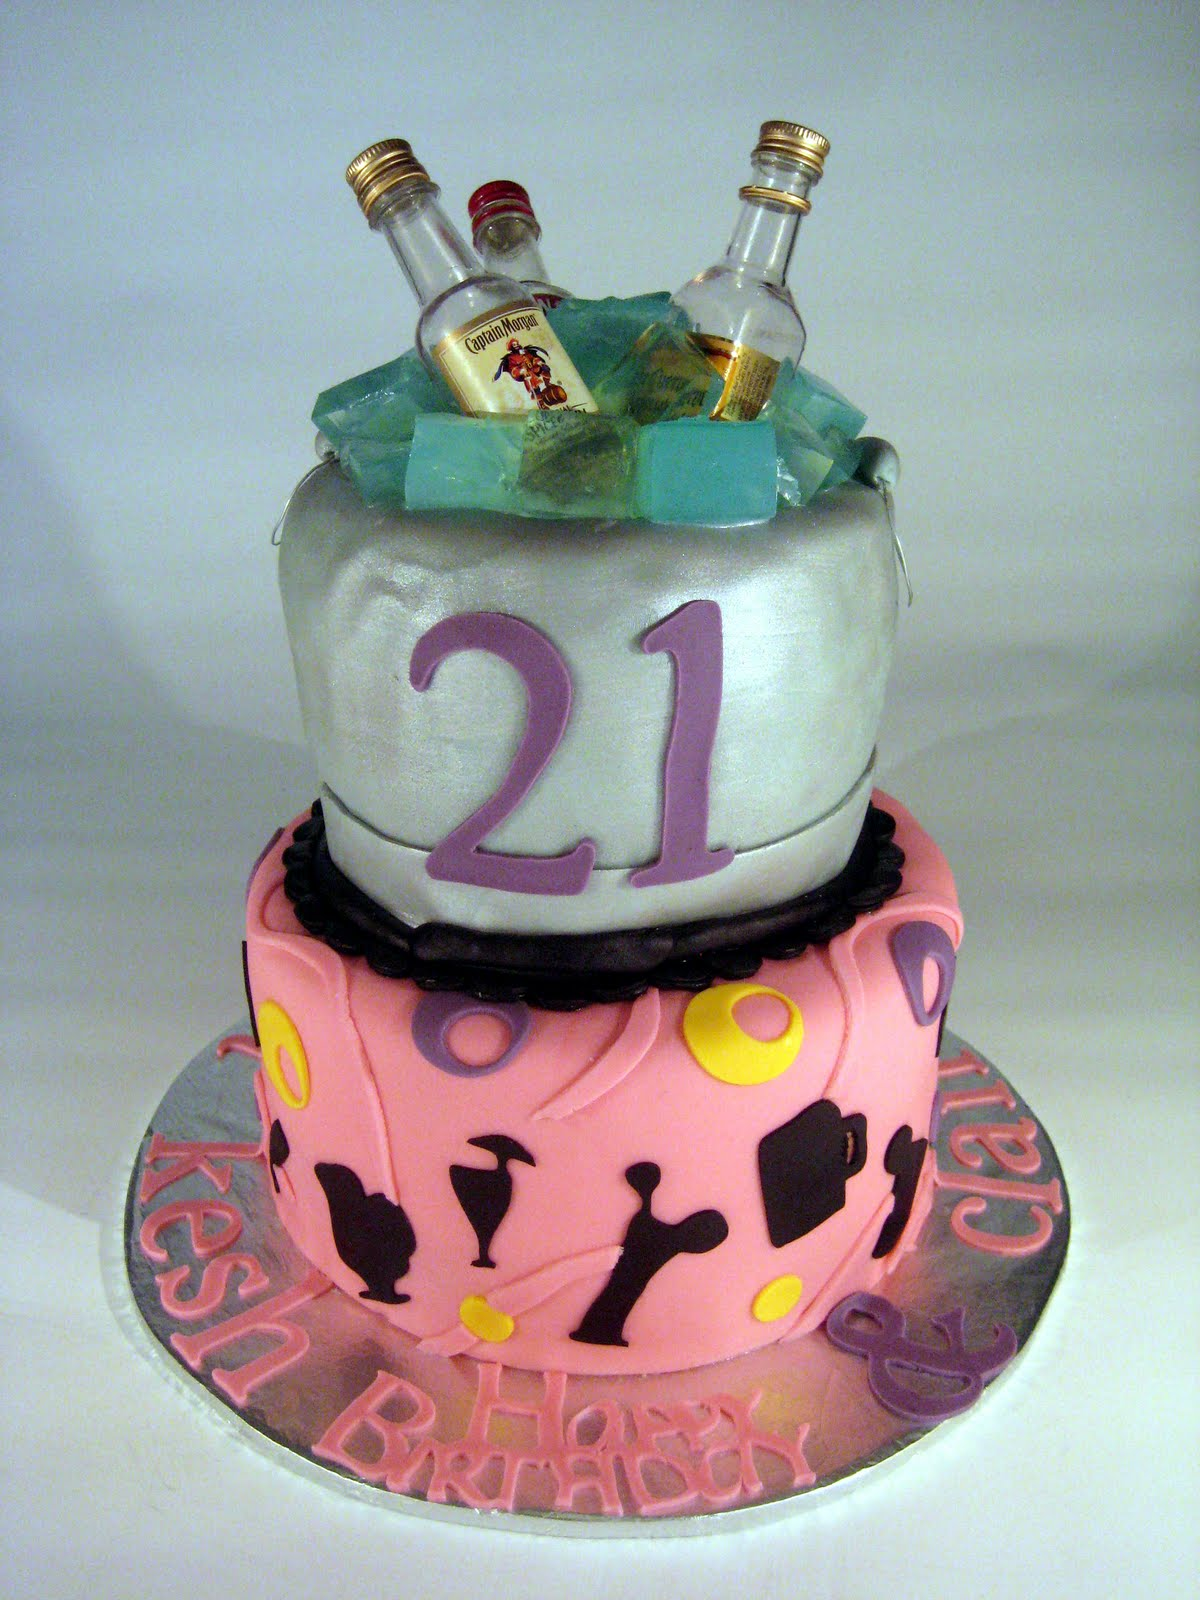 Birthday Cake Images Latest : 21st Birthday Cakes   Decoration Ideas Little Birthday Cakes